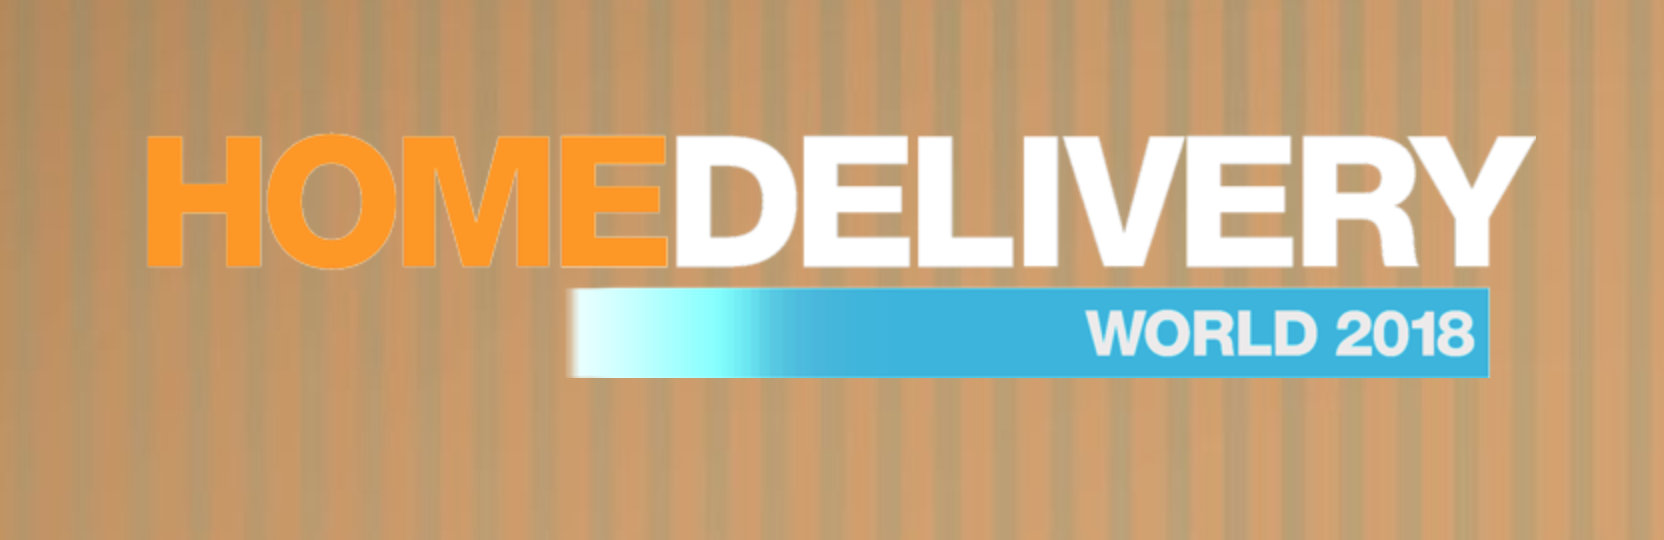 Home Delivery World will focus on delivery and retail logistics.